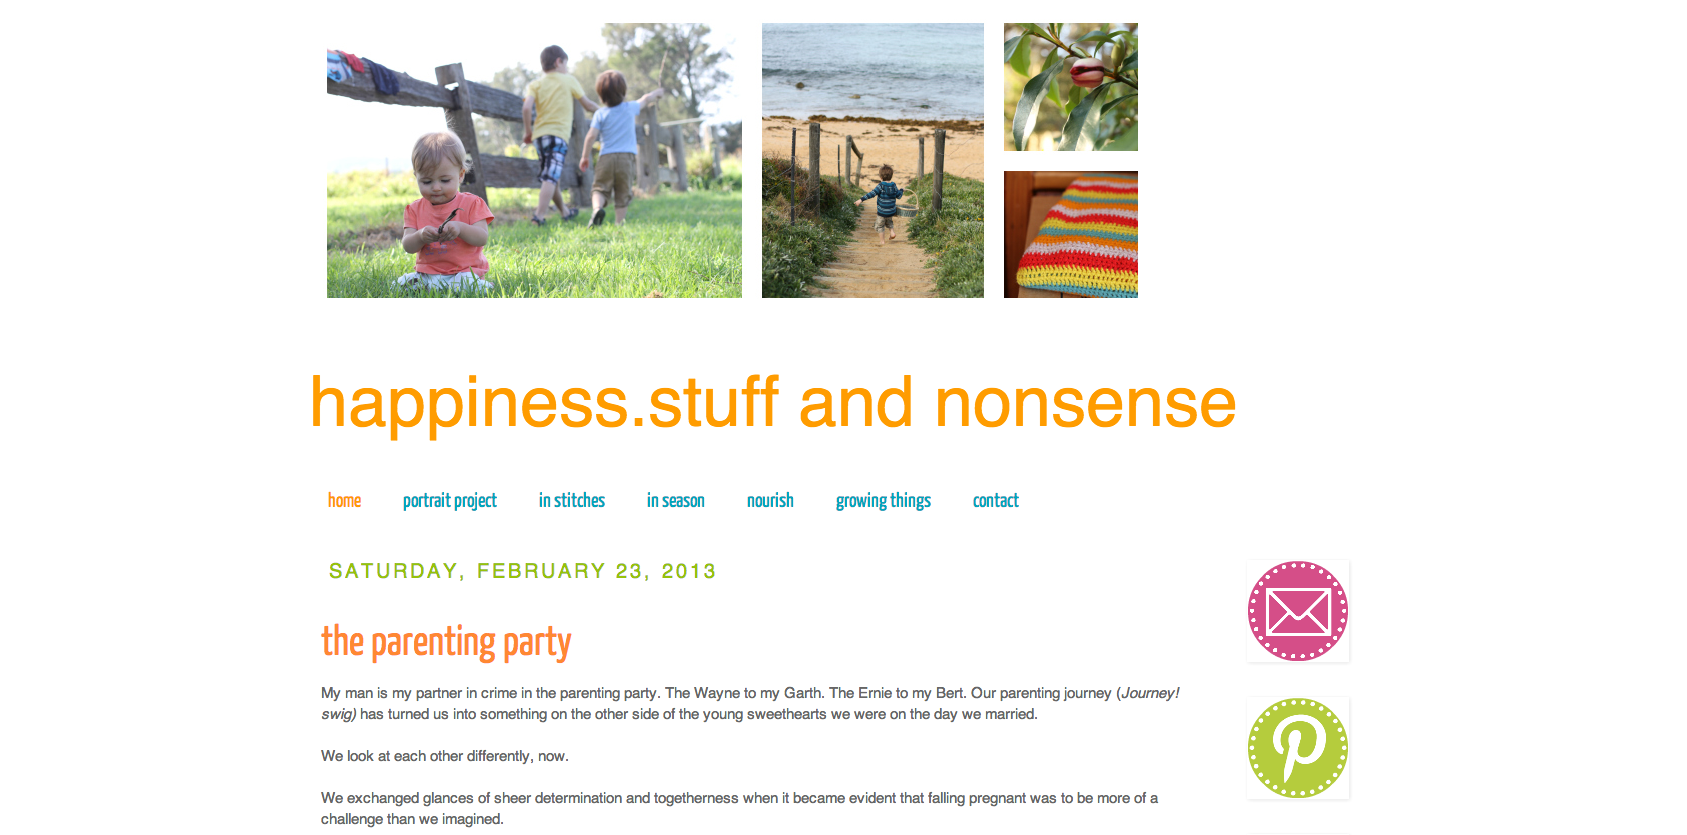 happiness.stuff and nonsense